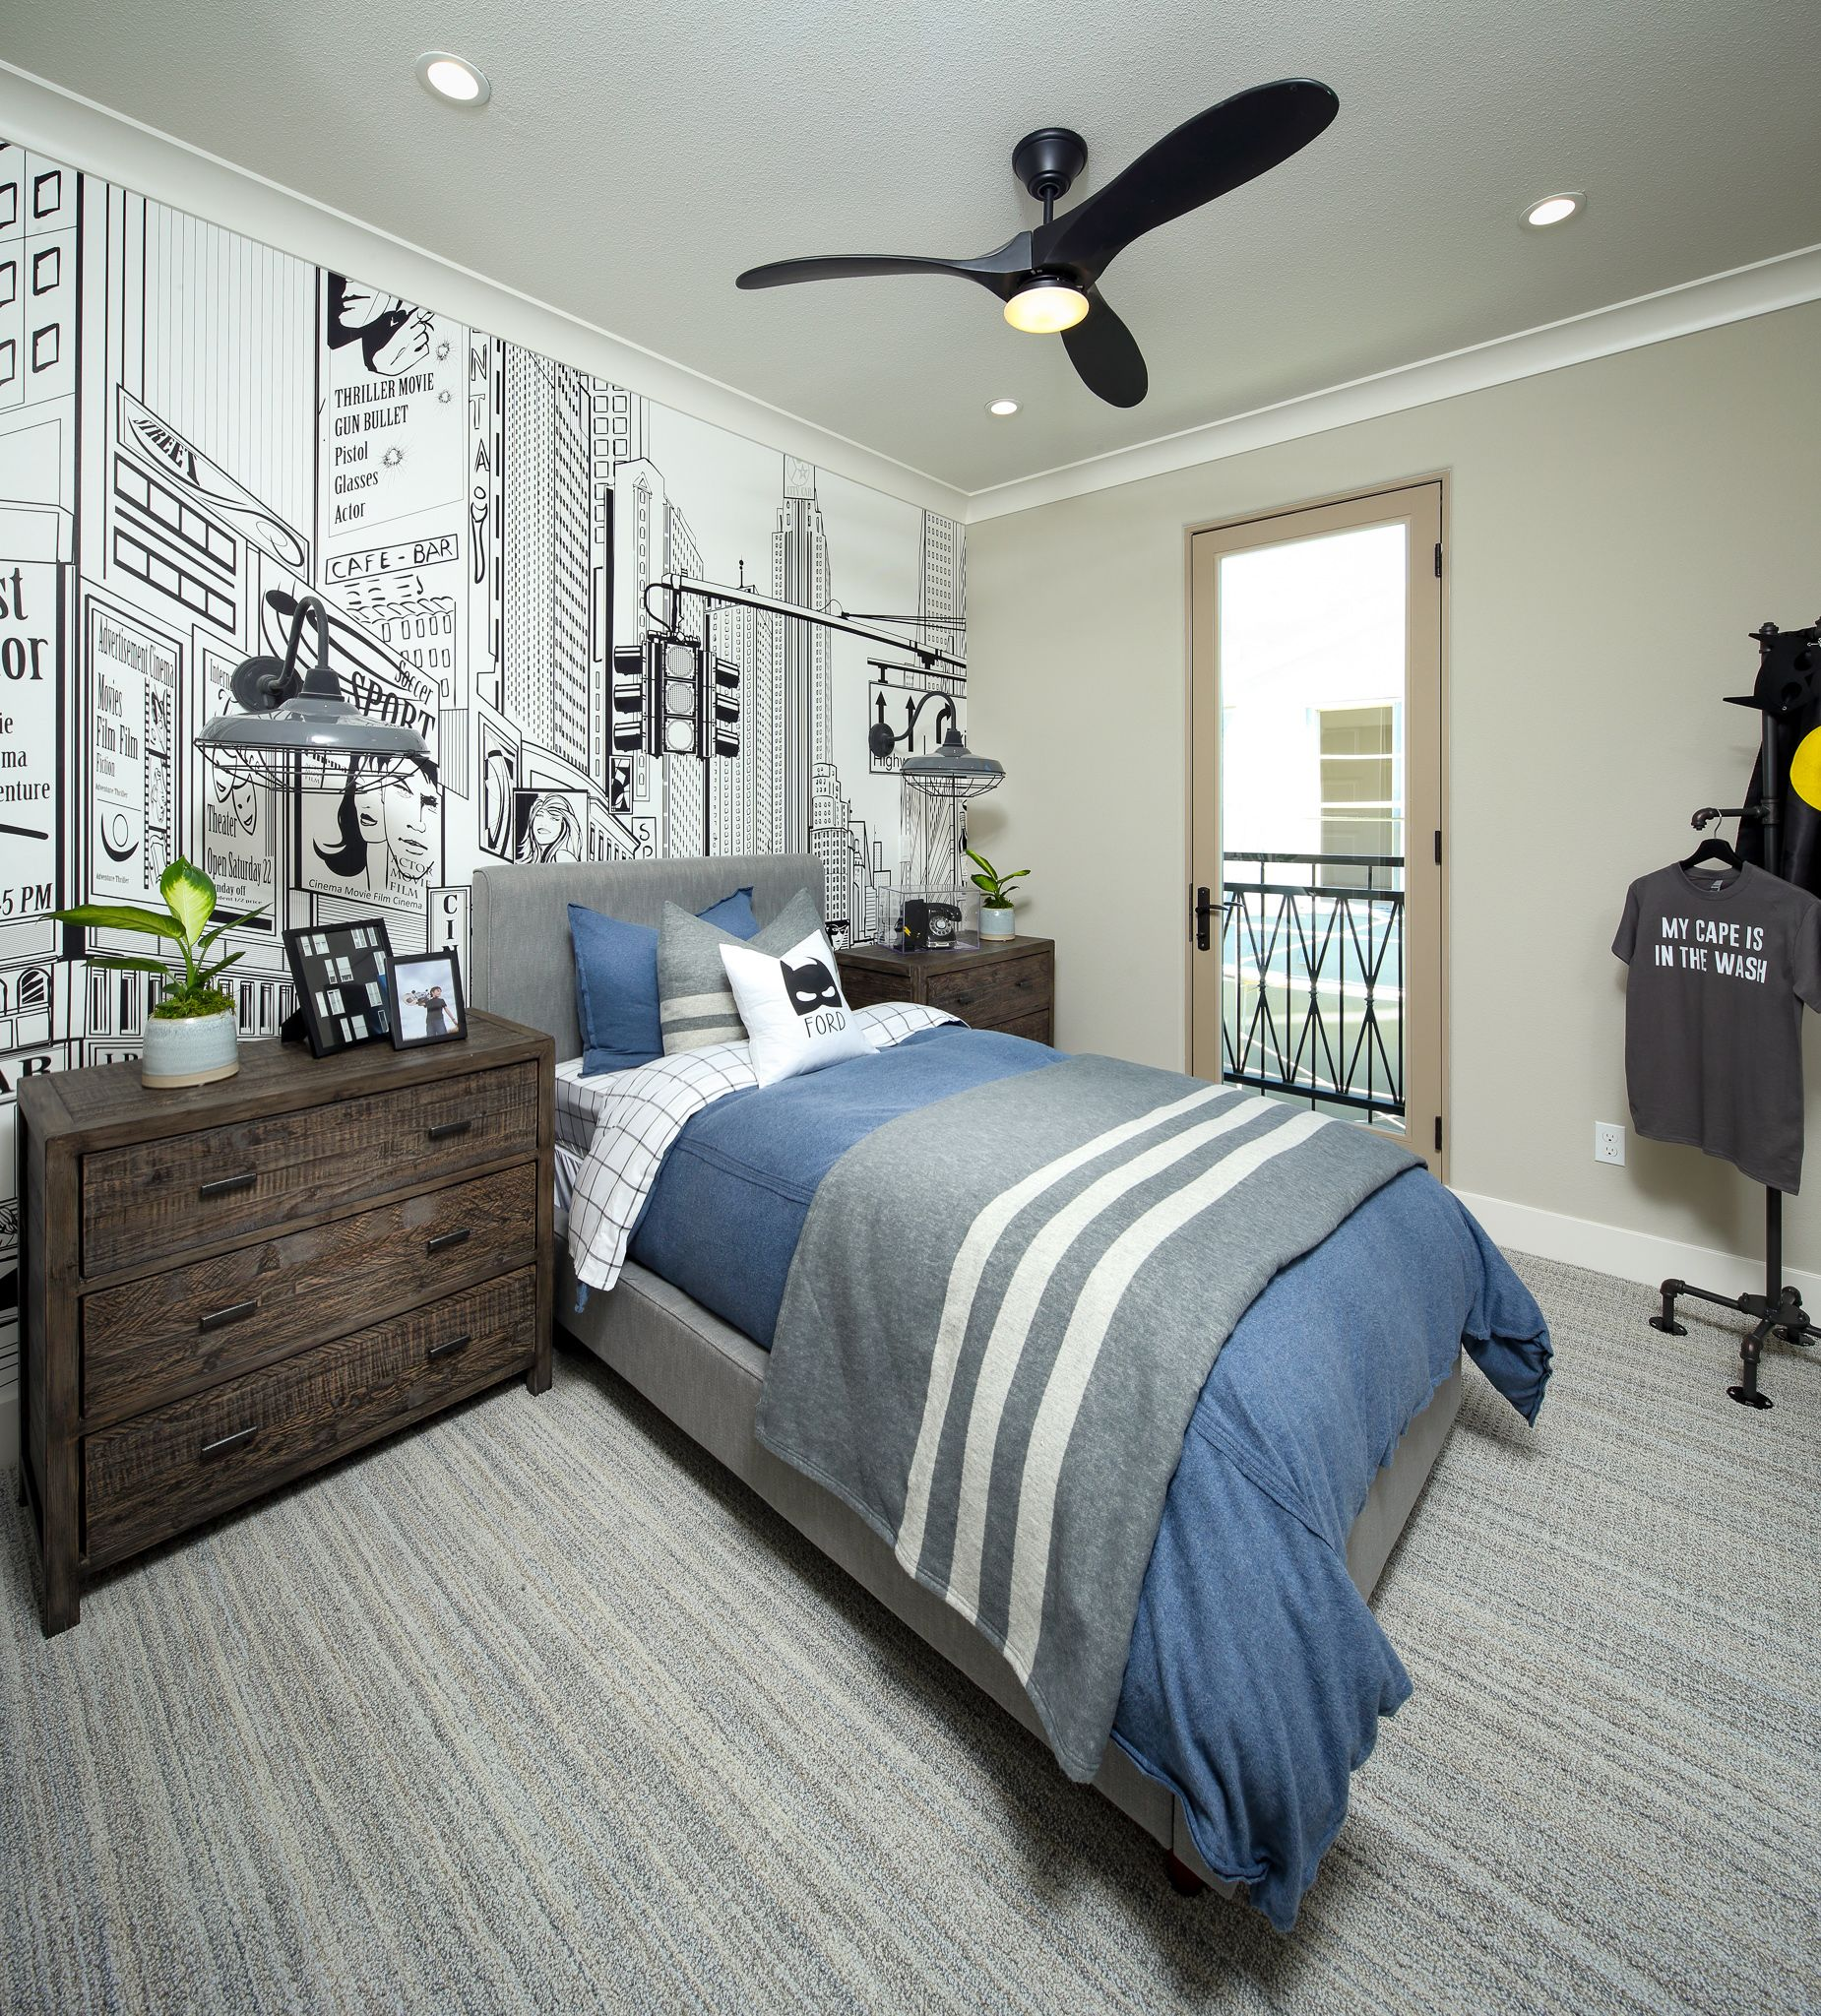 Bedroom featured in the Maravilla- Plan 2 By Dividend Homes in San Jose, CA